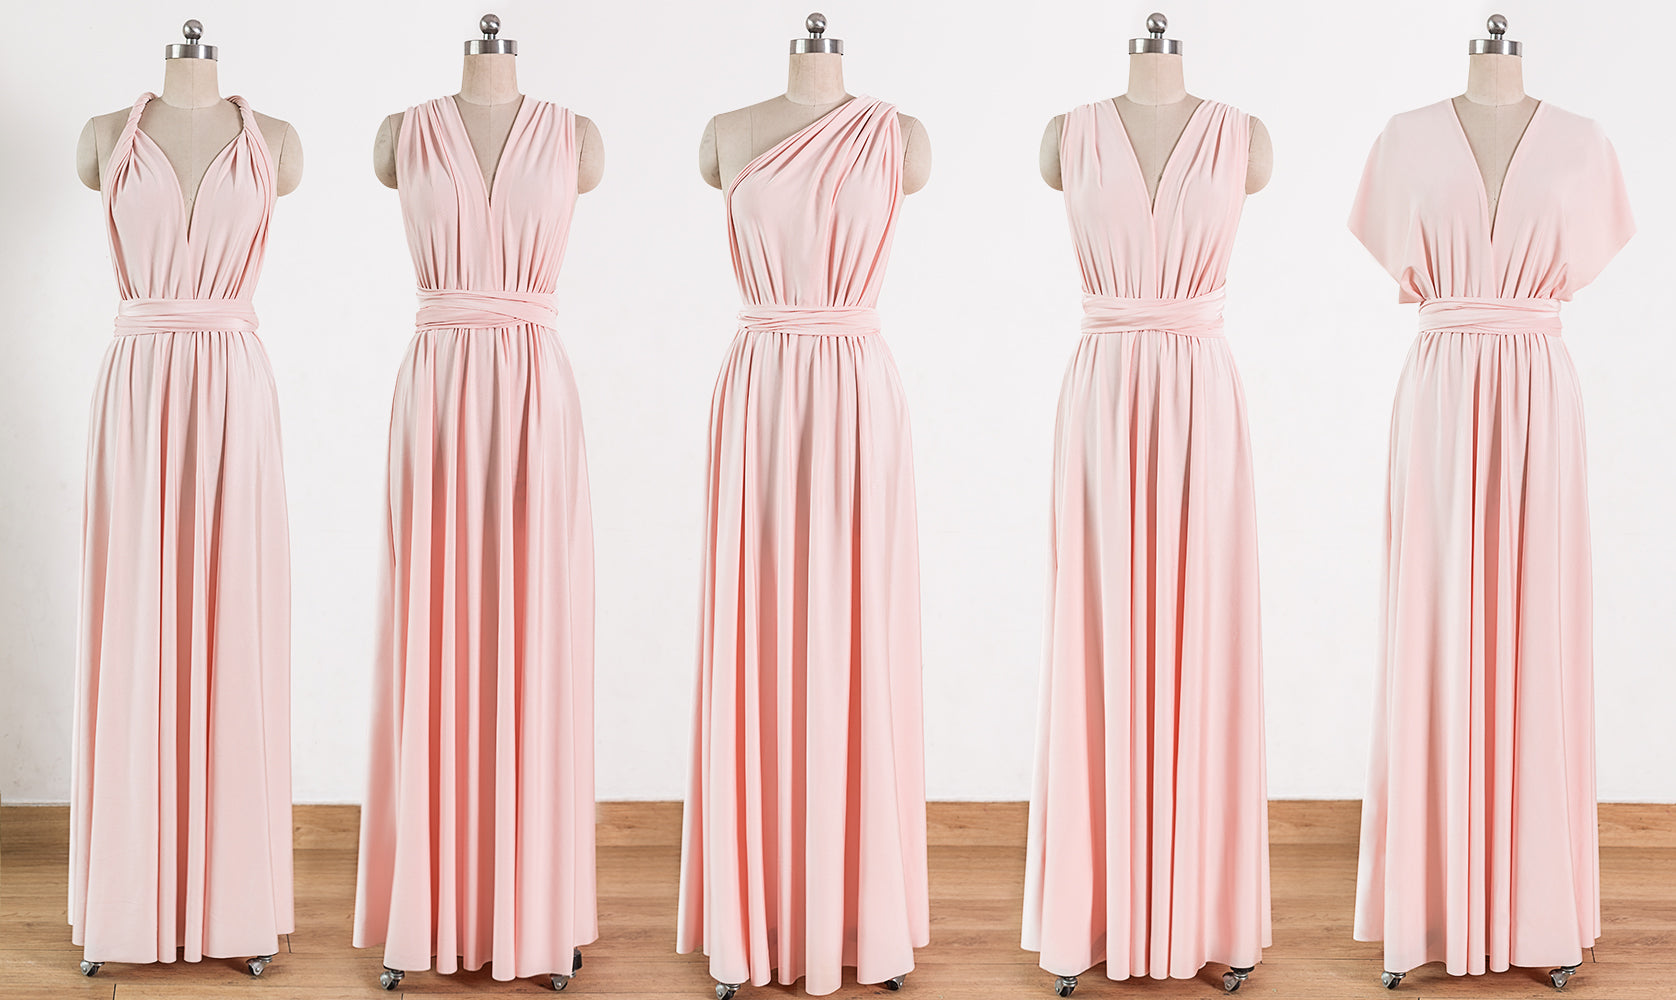 c4003e7fbbe2 Blush Pink Maxi Infinity Dresses,Convertible Bridesmaid Dresses, Multiway  Wrap Dresses - NICEOO